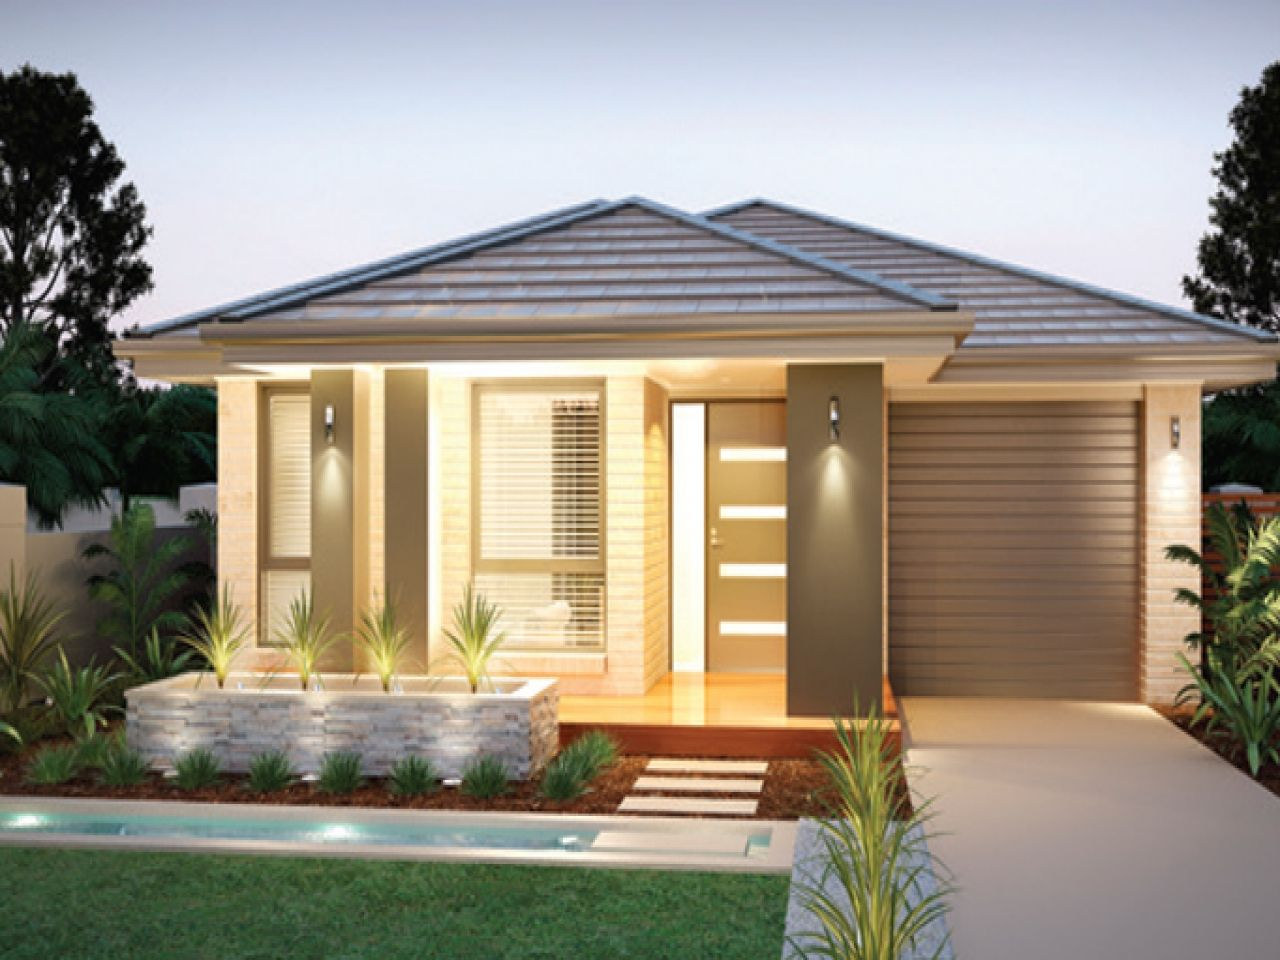 Home Design Story Android App Small House Exteriors Small Modern Home House Designs Exterior